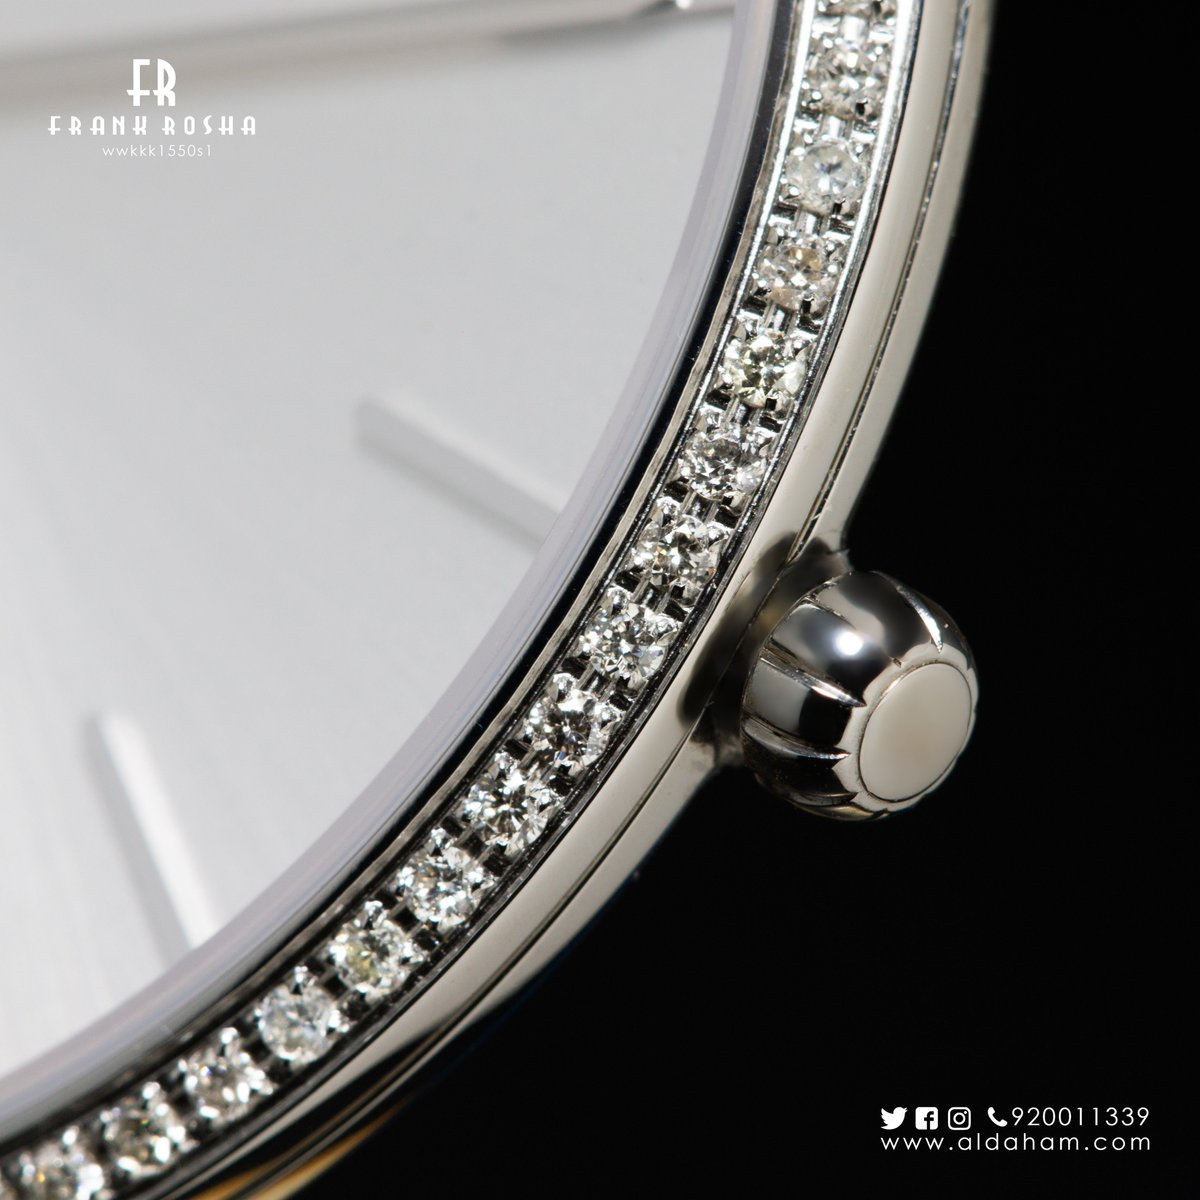 fdafe15925358 ... encircled by diamonds and accompanied by an elegant bracelet. This is  how luxury is defined.  الدهام  فرانك روشا pic.twitter.com WeTSEbA094